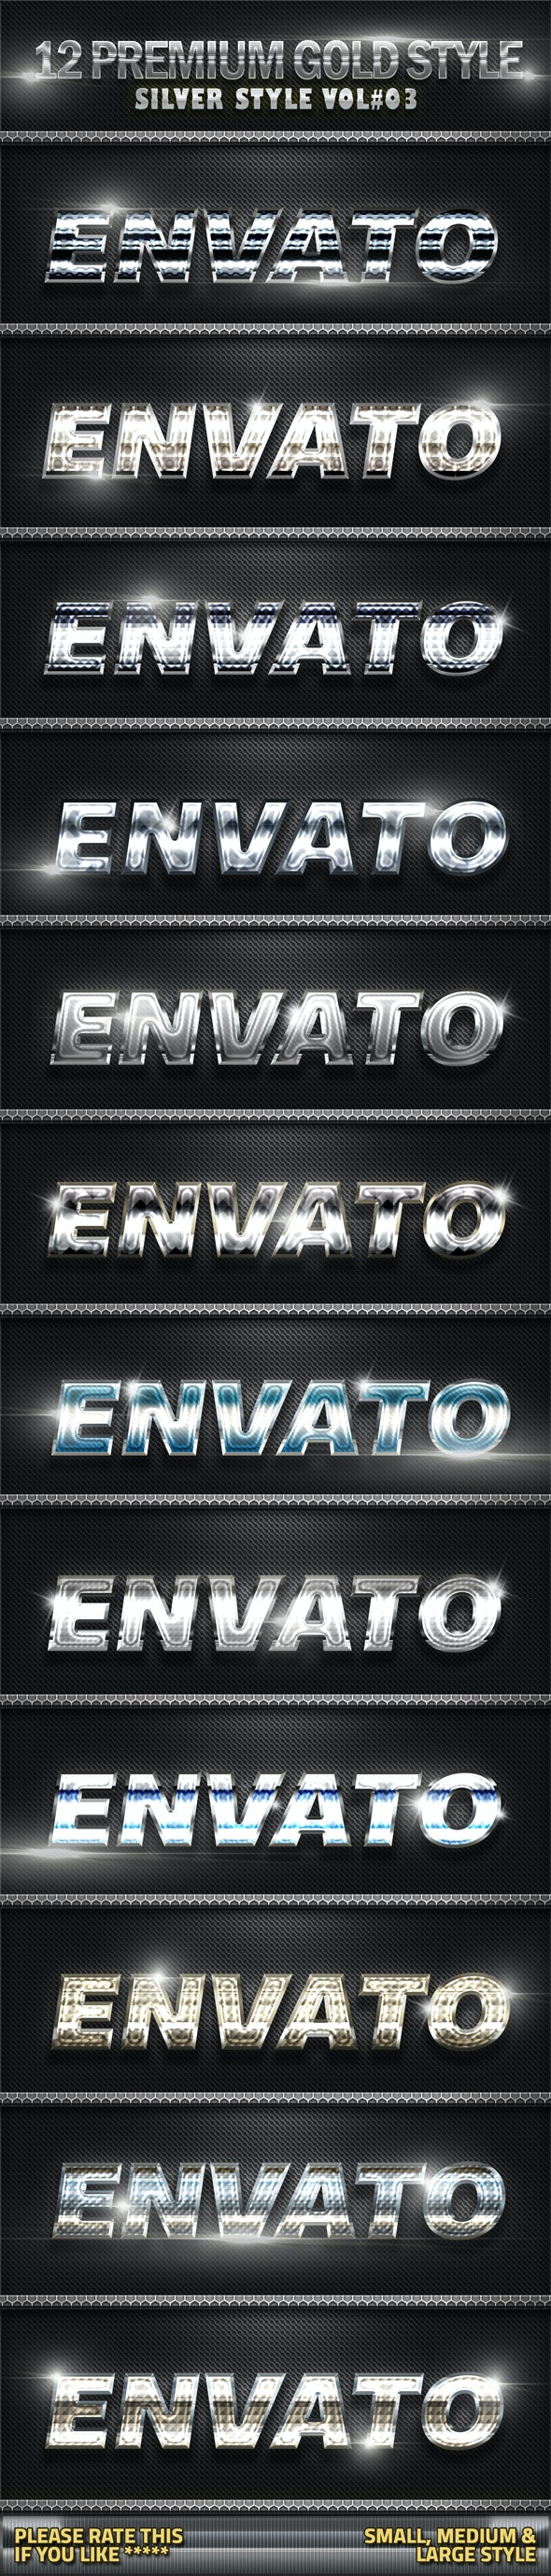 12 Metal Silver Photoshop Style V04 - Text Effects Styles